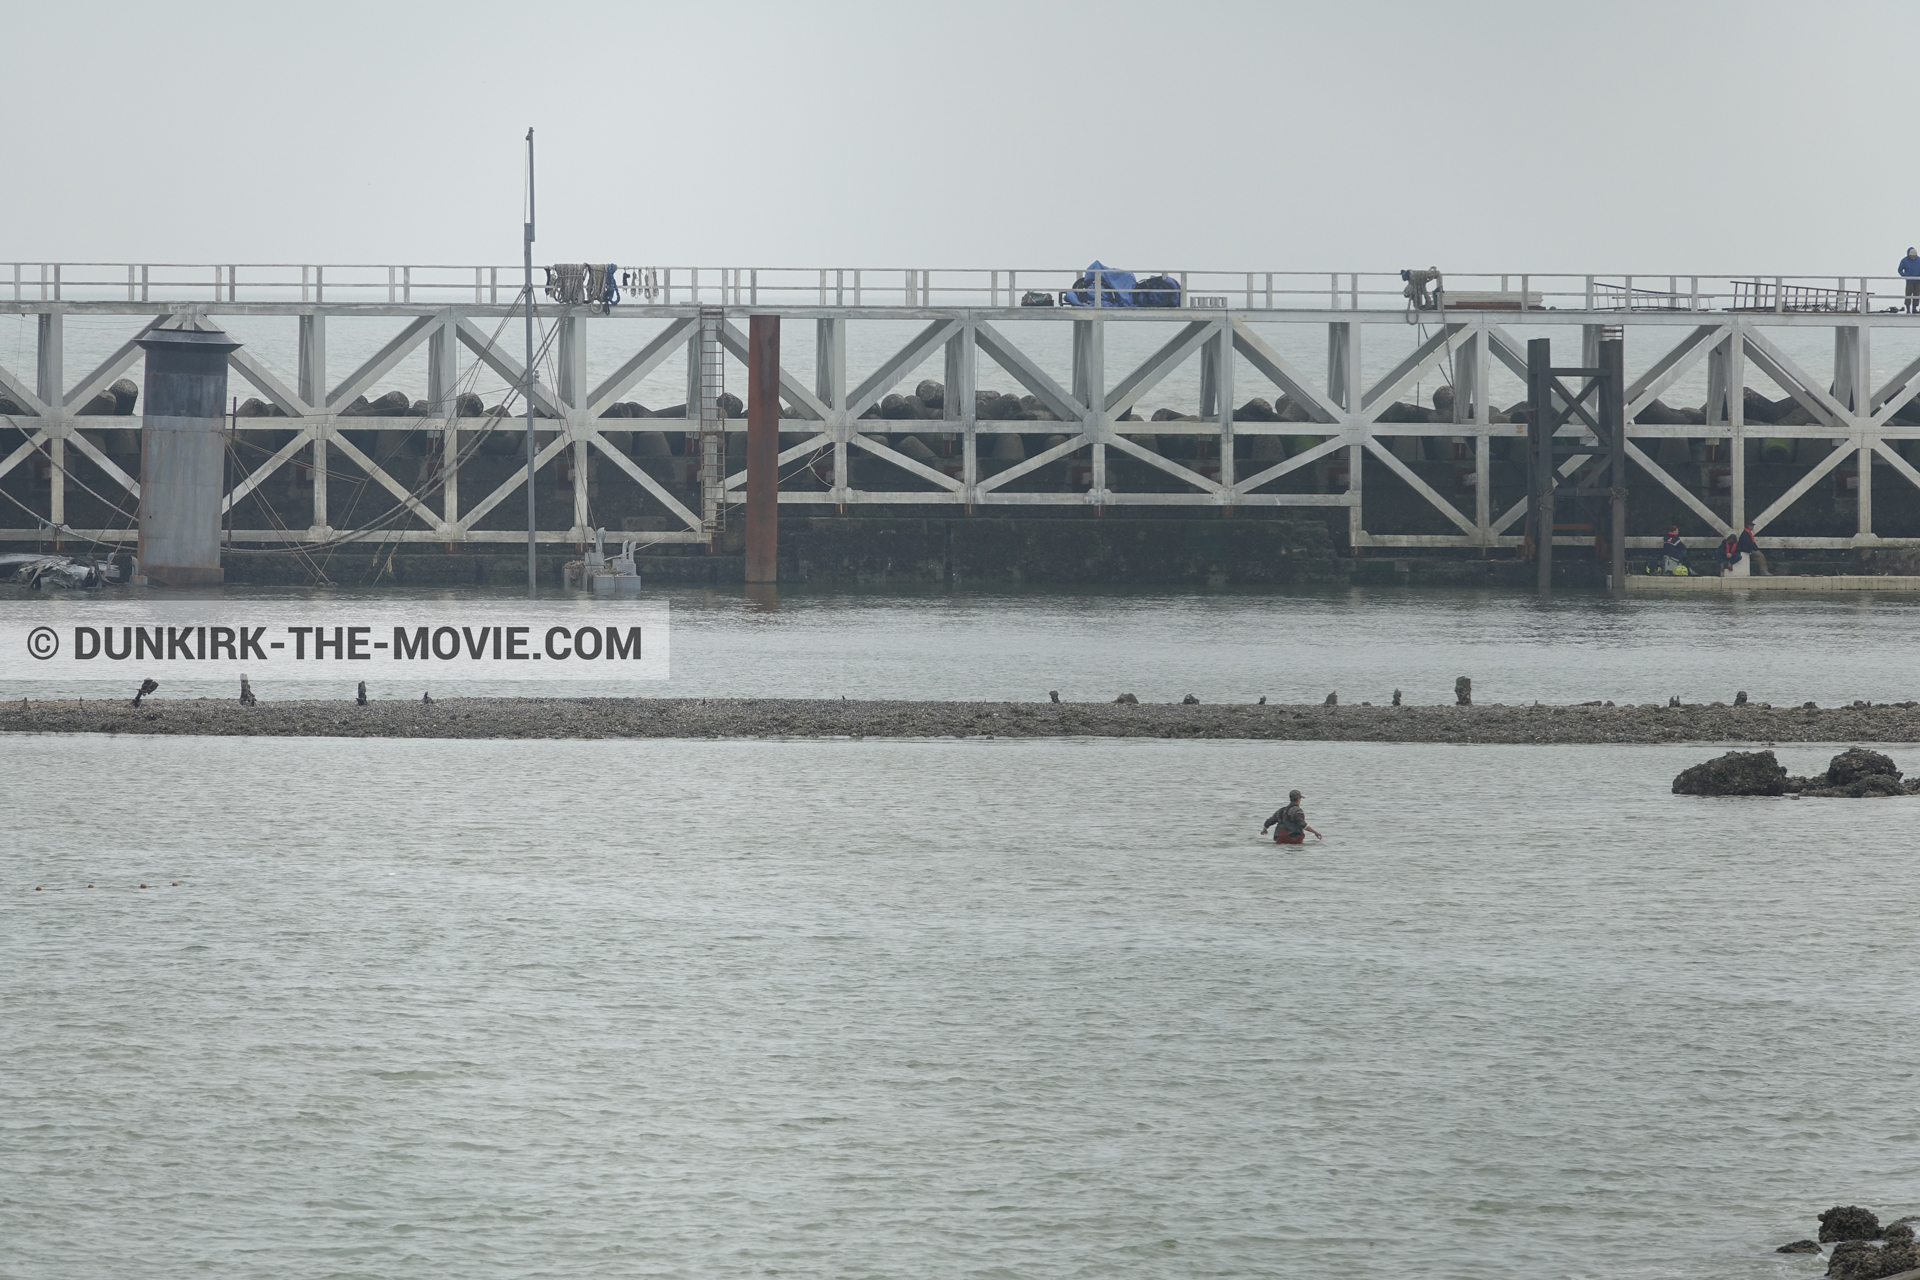 Photo on canvas number 213, of the filming of the film Dunkirk